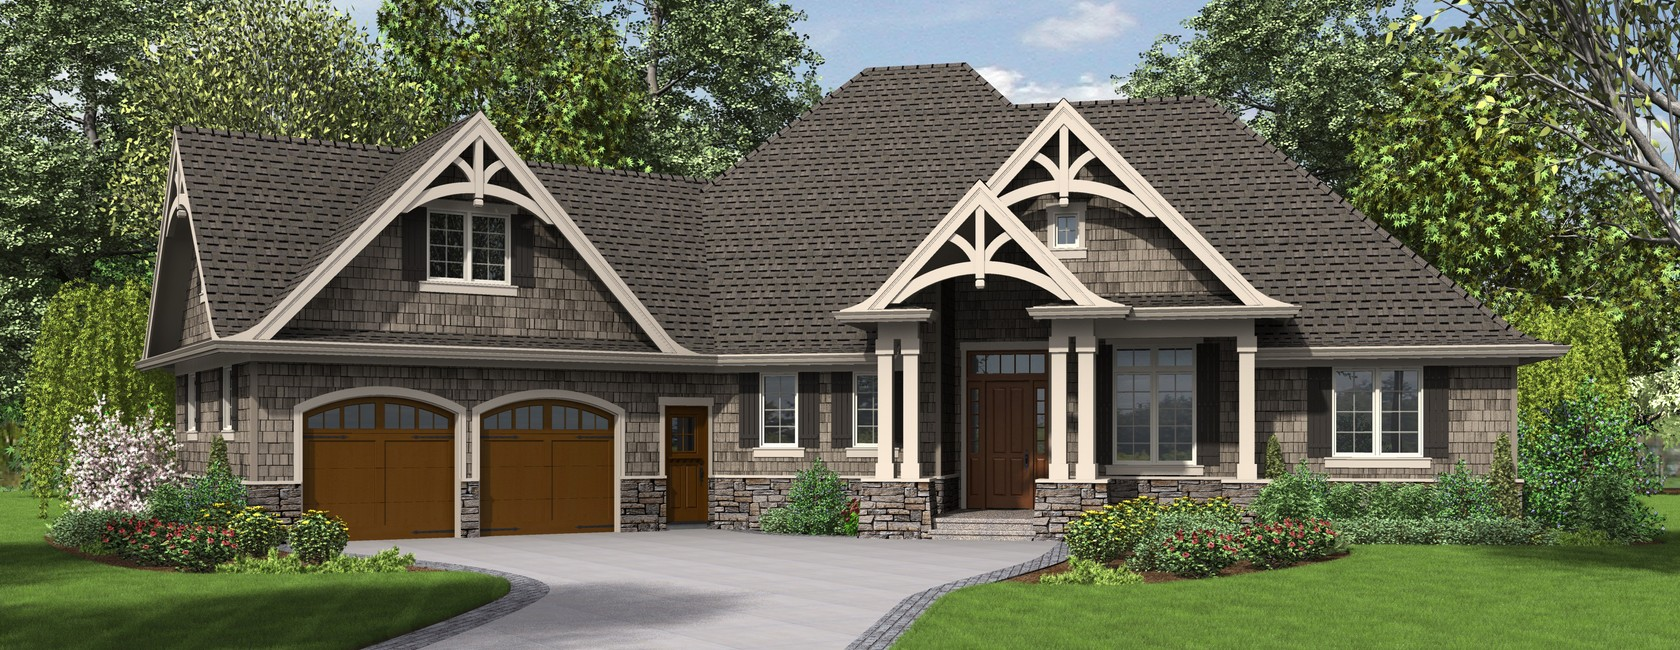 The ripley single story craftsman house plan with tons of for Best craftsman house plans